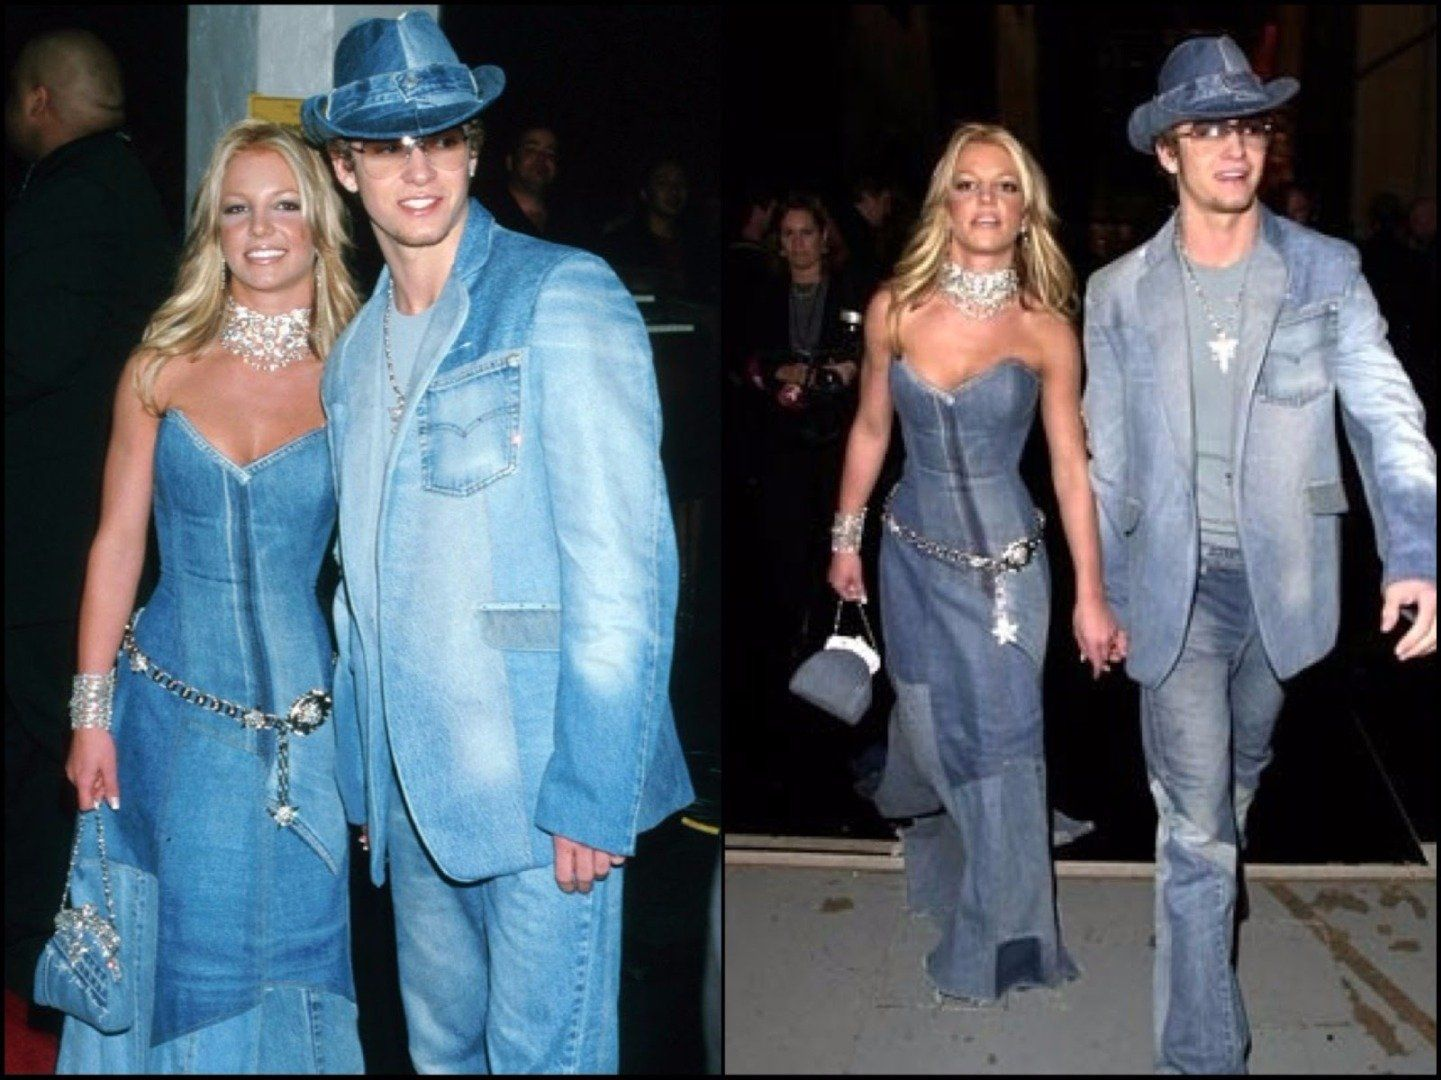 Double Denim Was A Very Popular Fashion Trend In Say The 80s But In The Last Decade Or So It Was A Big No But Somehow I Fashion Love Jeans Bridesmaid